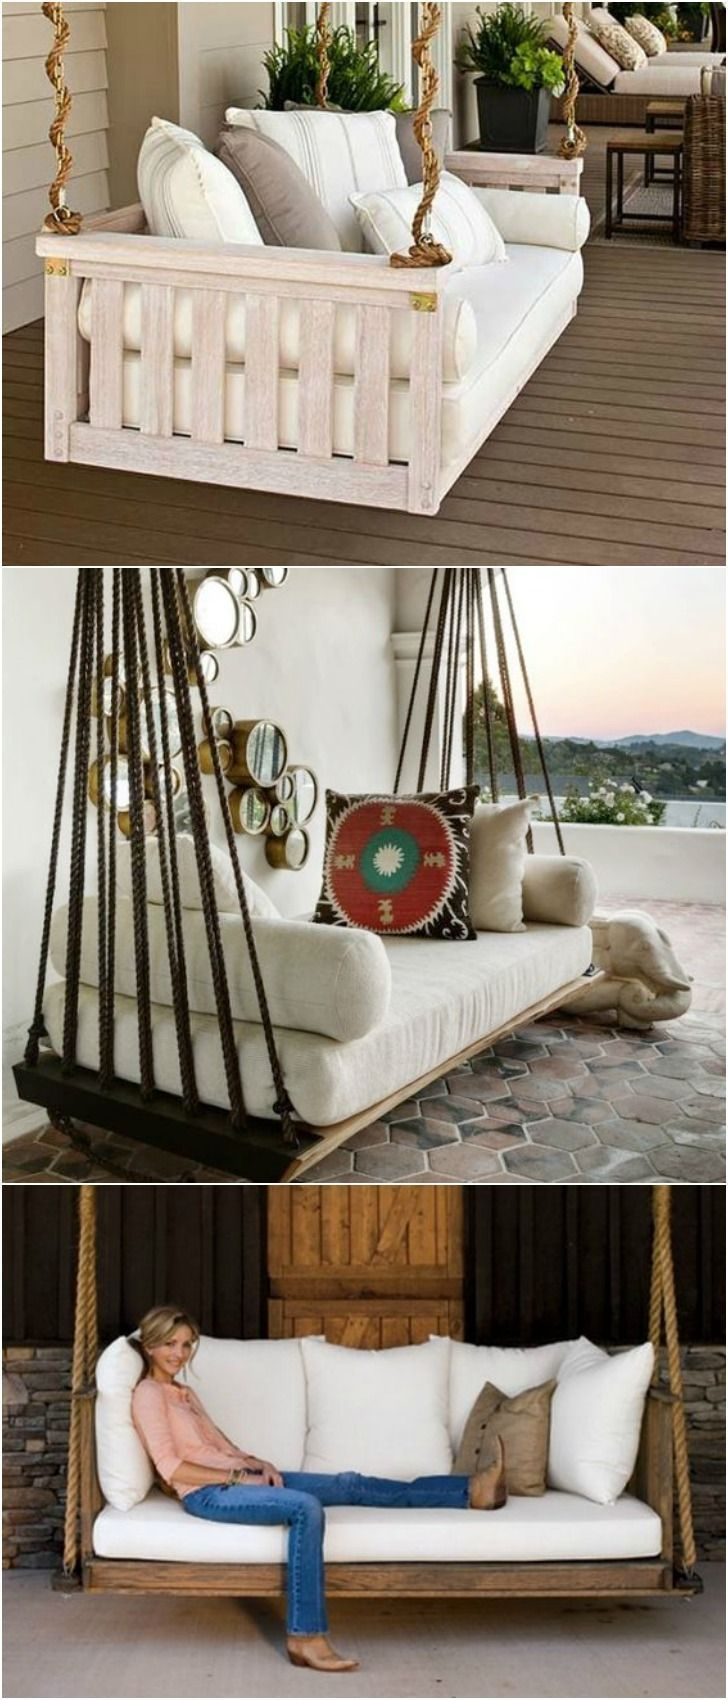 Nice 7 Diy Outdoor Swings That Ll Make Warm Nights Even Better 6